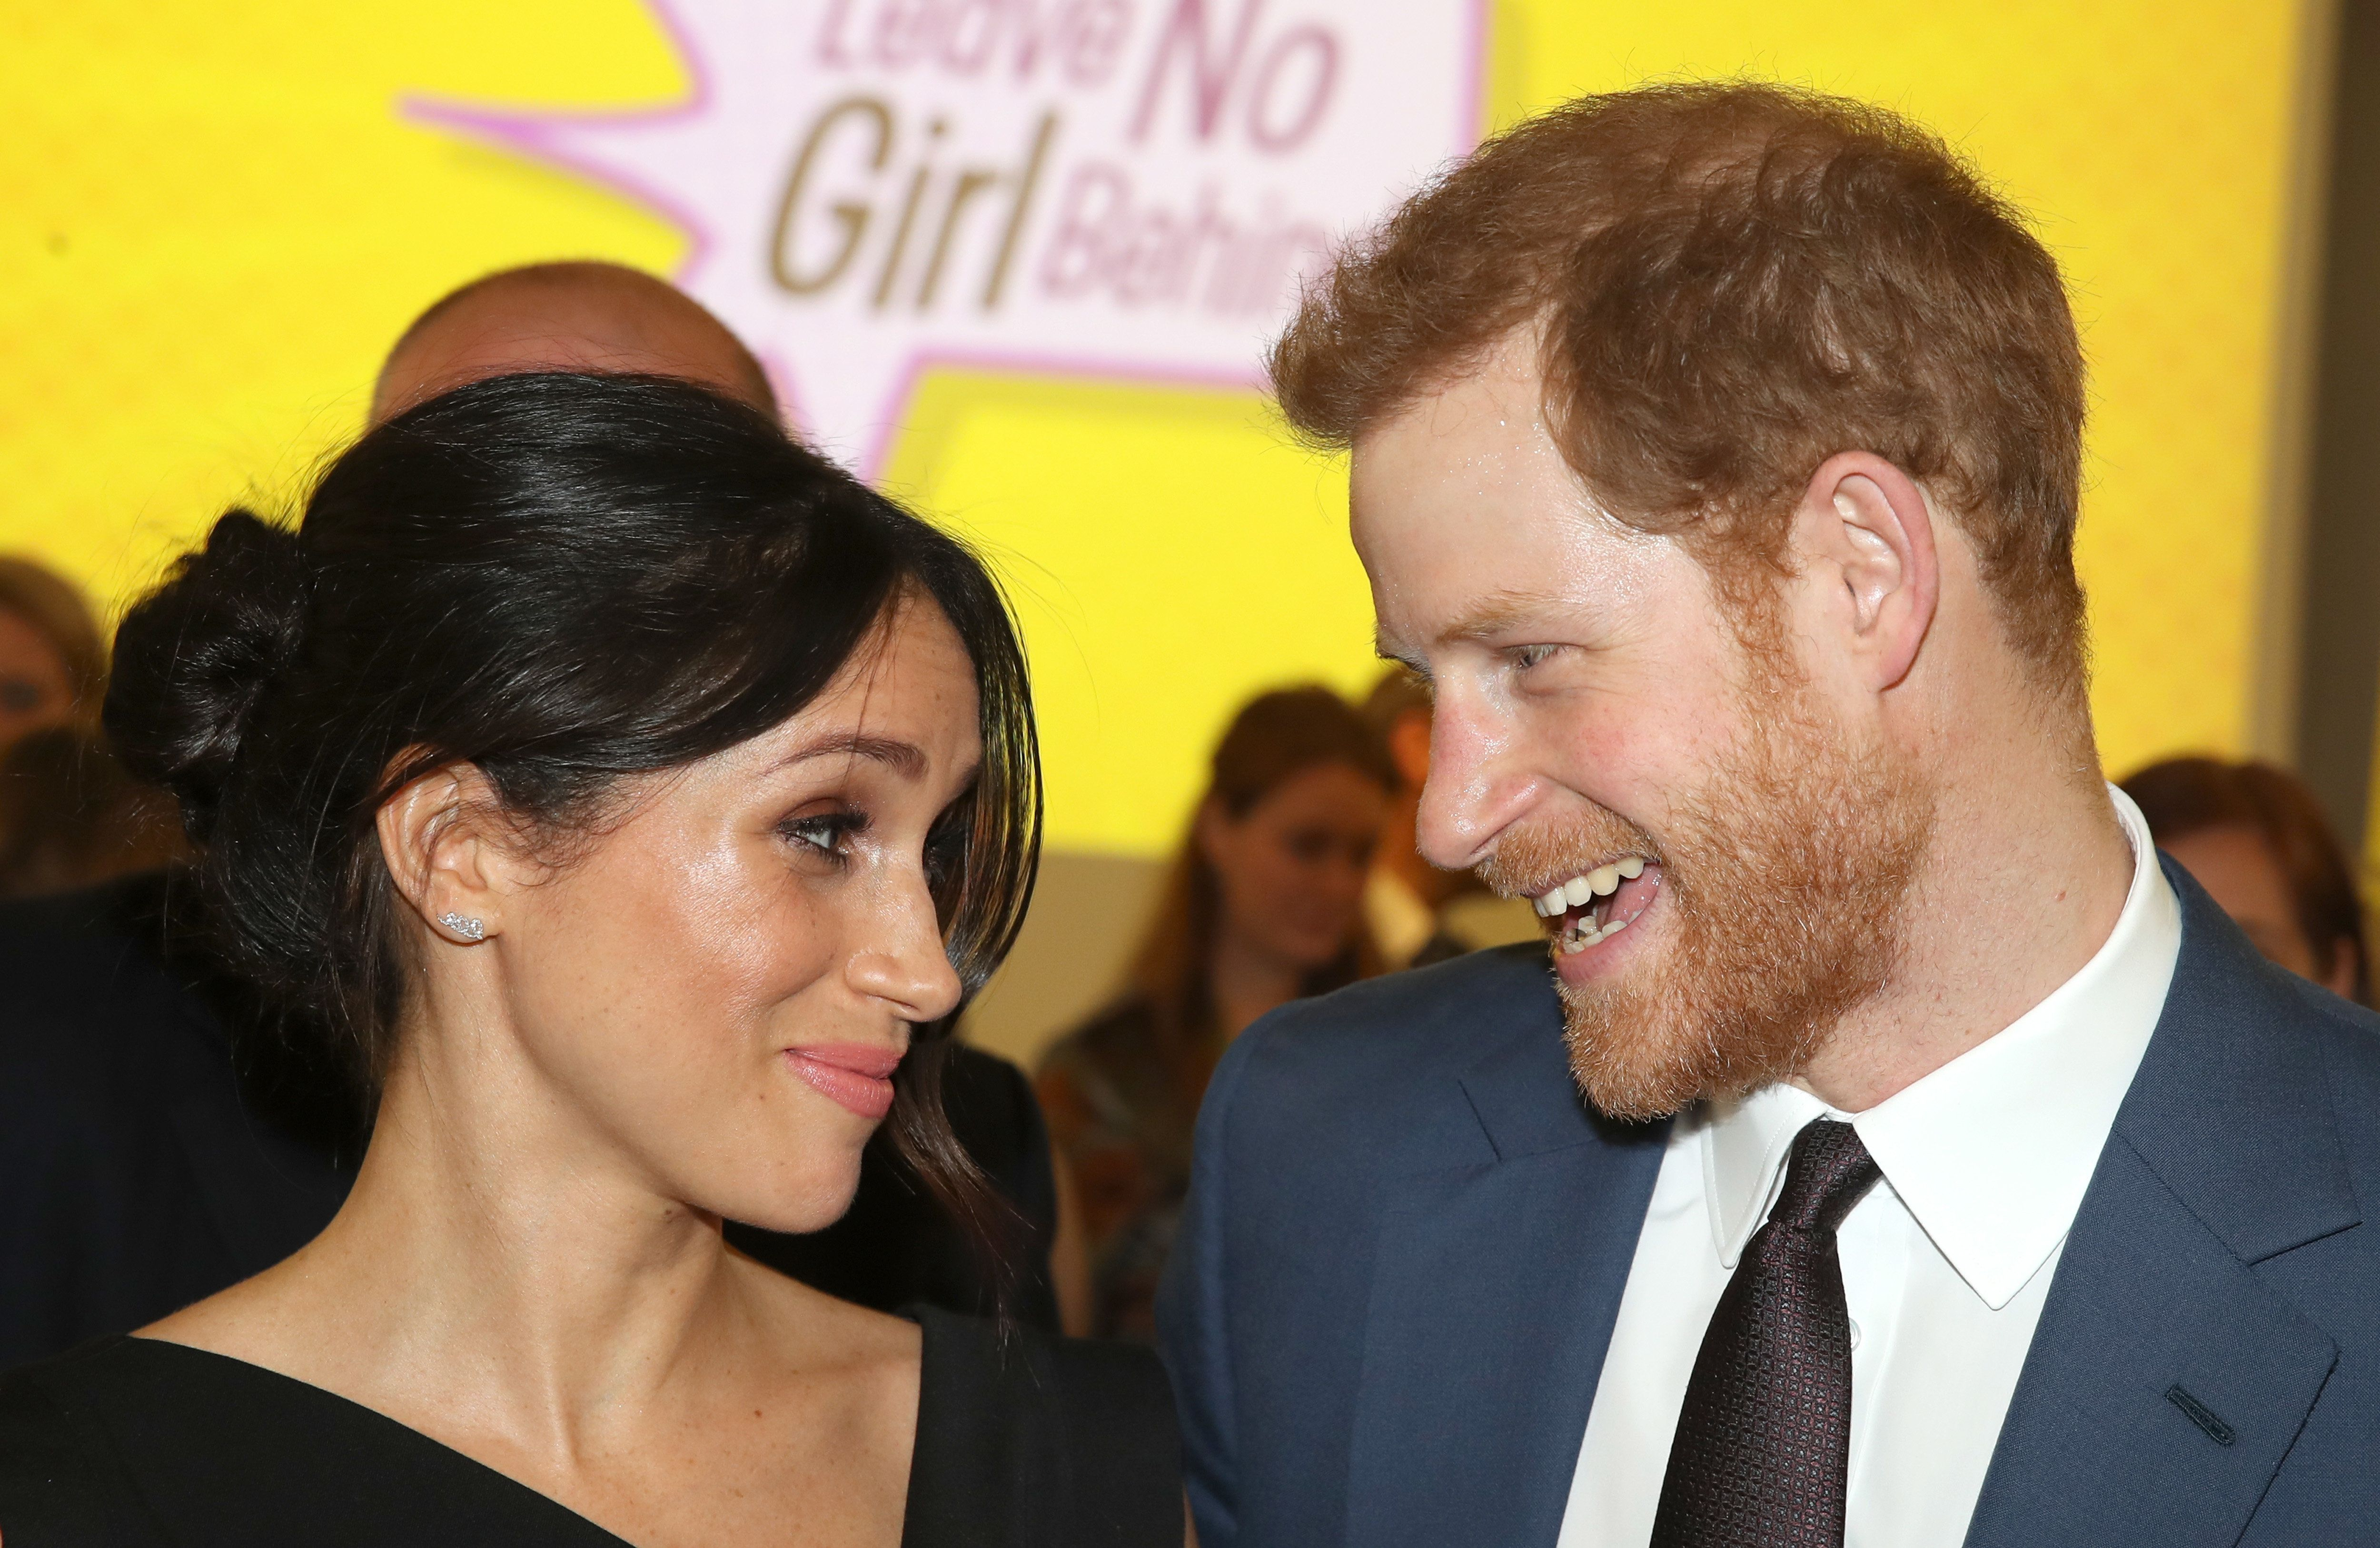 Meghan is likely to omit the phrase 'to obey' from her wedding vows, says Claudia